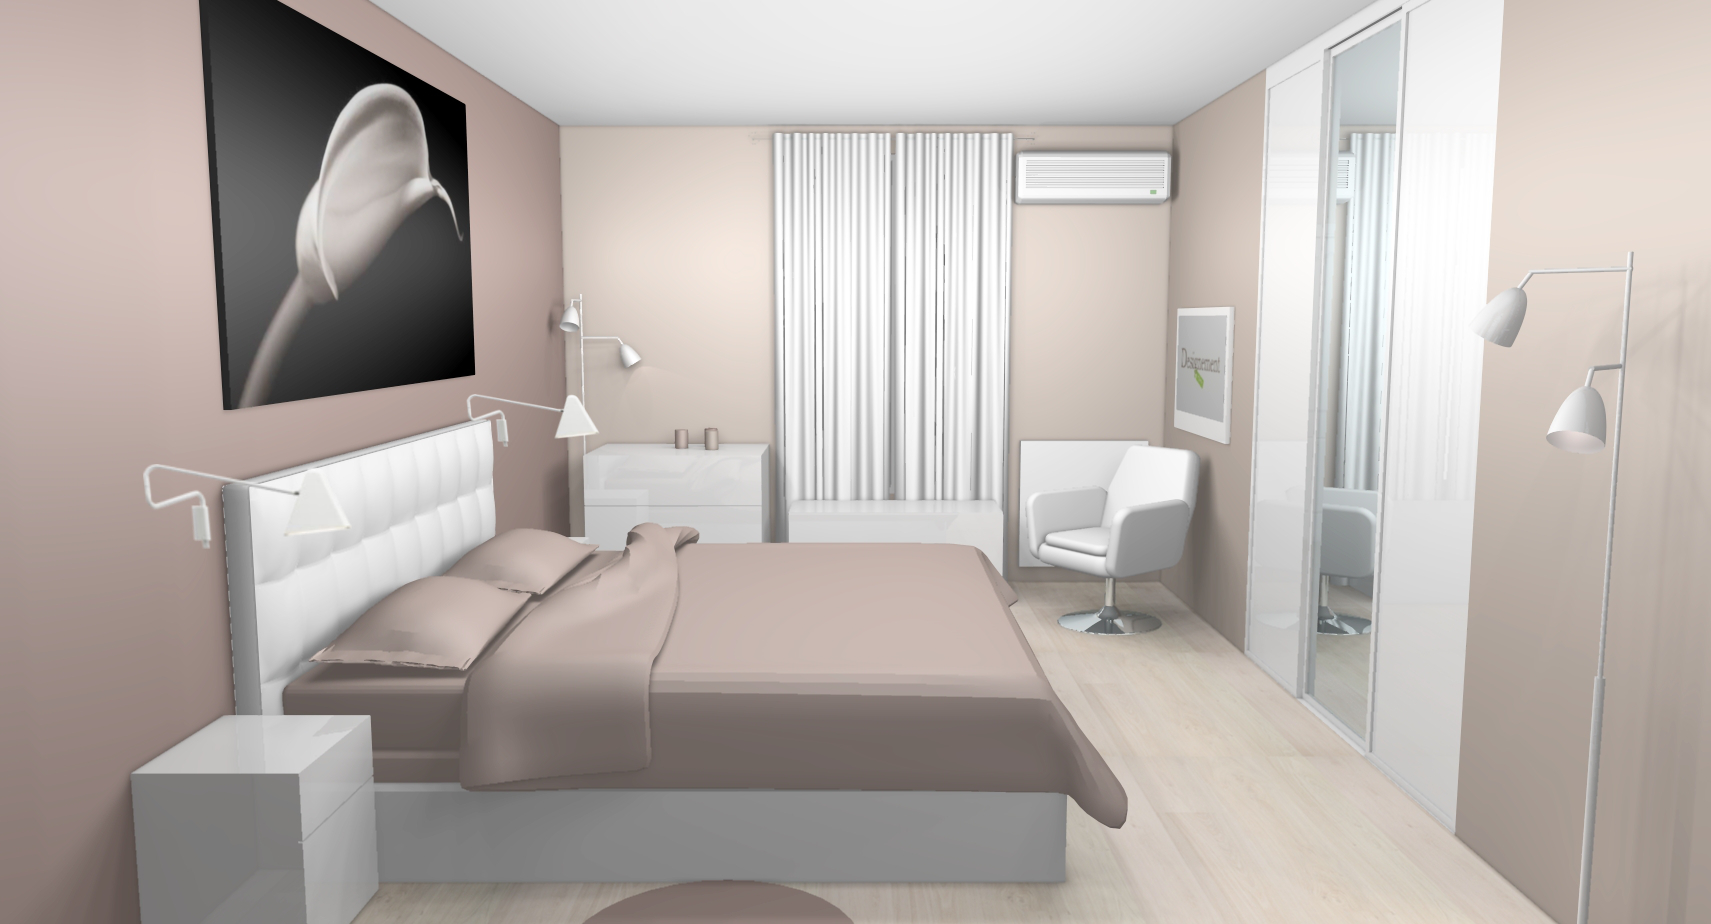 dcoration chambre blanc et taupe - Chambre Taupe Et Beige